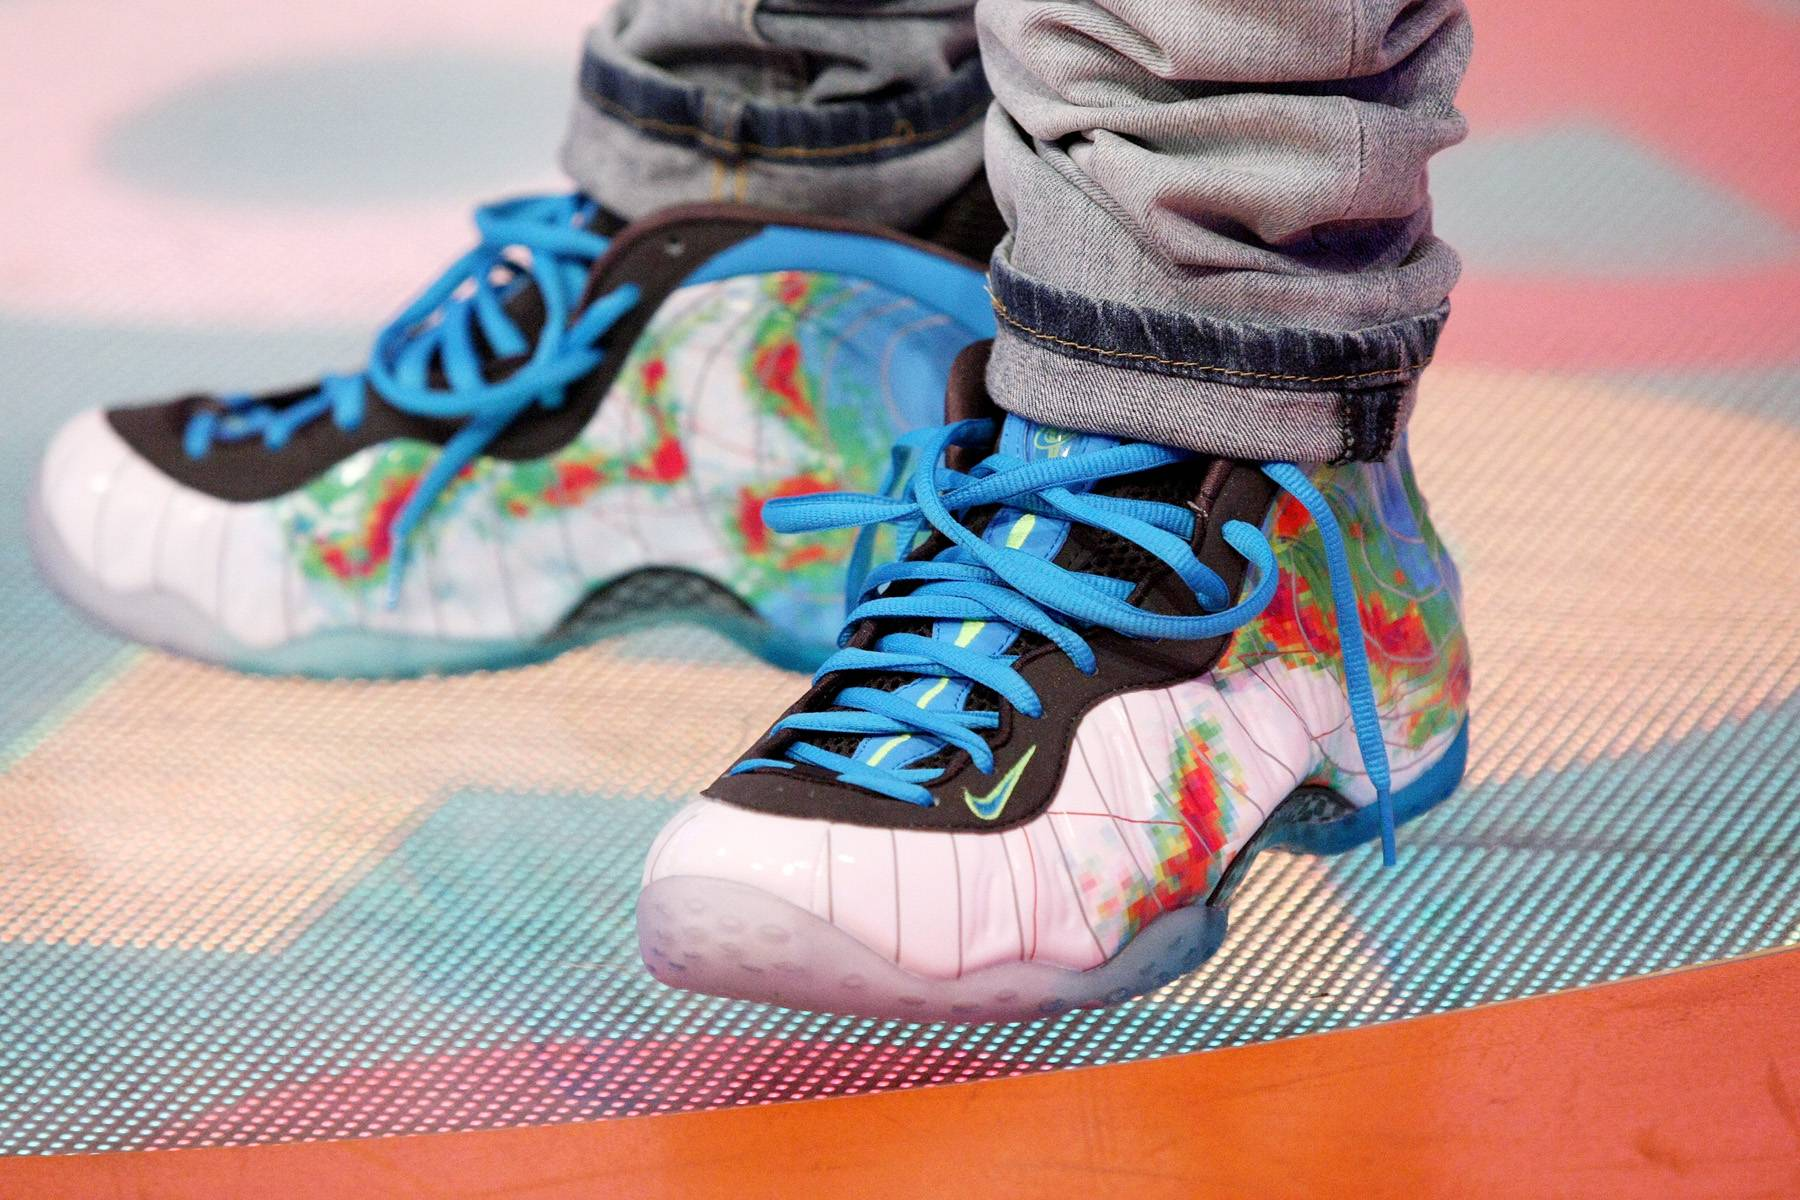 Nike Foamposite One Thermal Map - Nike Foamposite One Thermal Map Weatherman Asteroid Gradient Sport Royal   (Photo: Bennett Raglin/BET/Getty Images for BET)